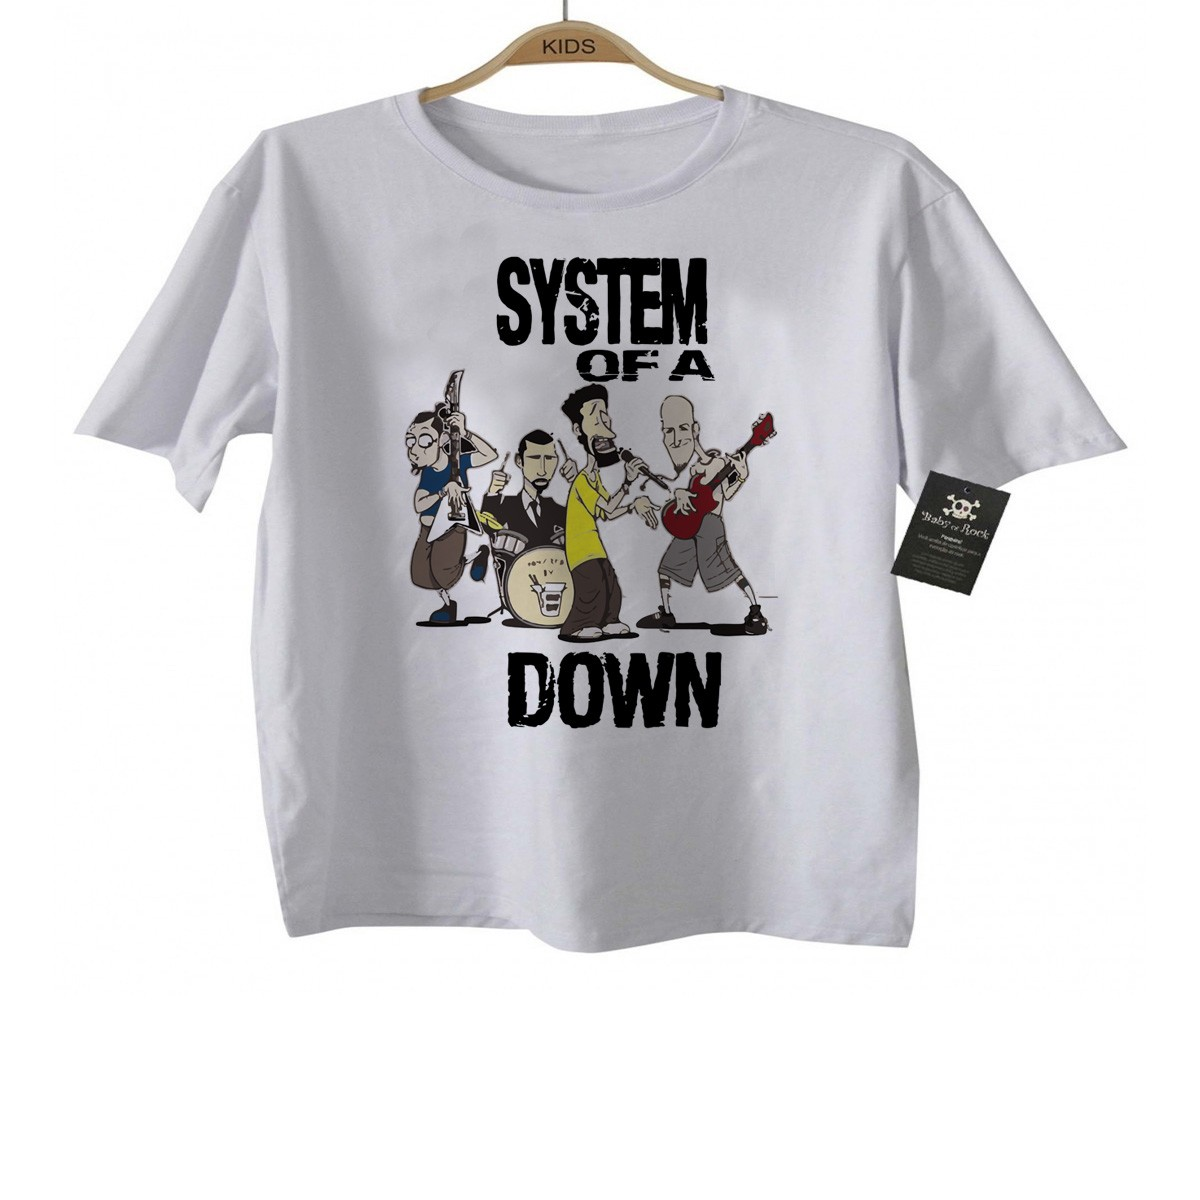 Camiseta Infantil Rock - System of a Down - White  - Baby Monster S/A